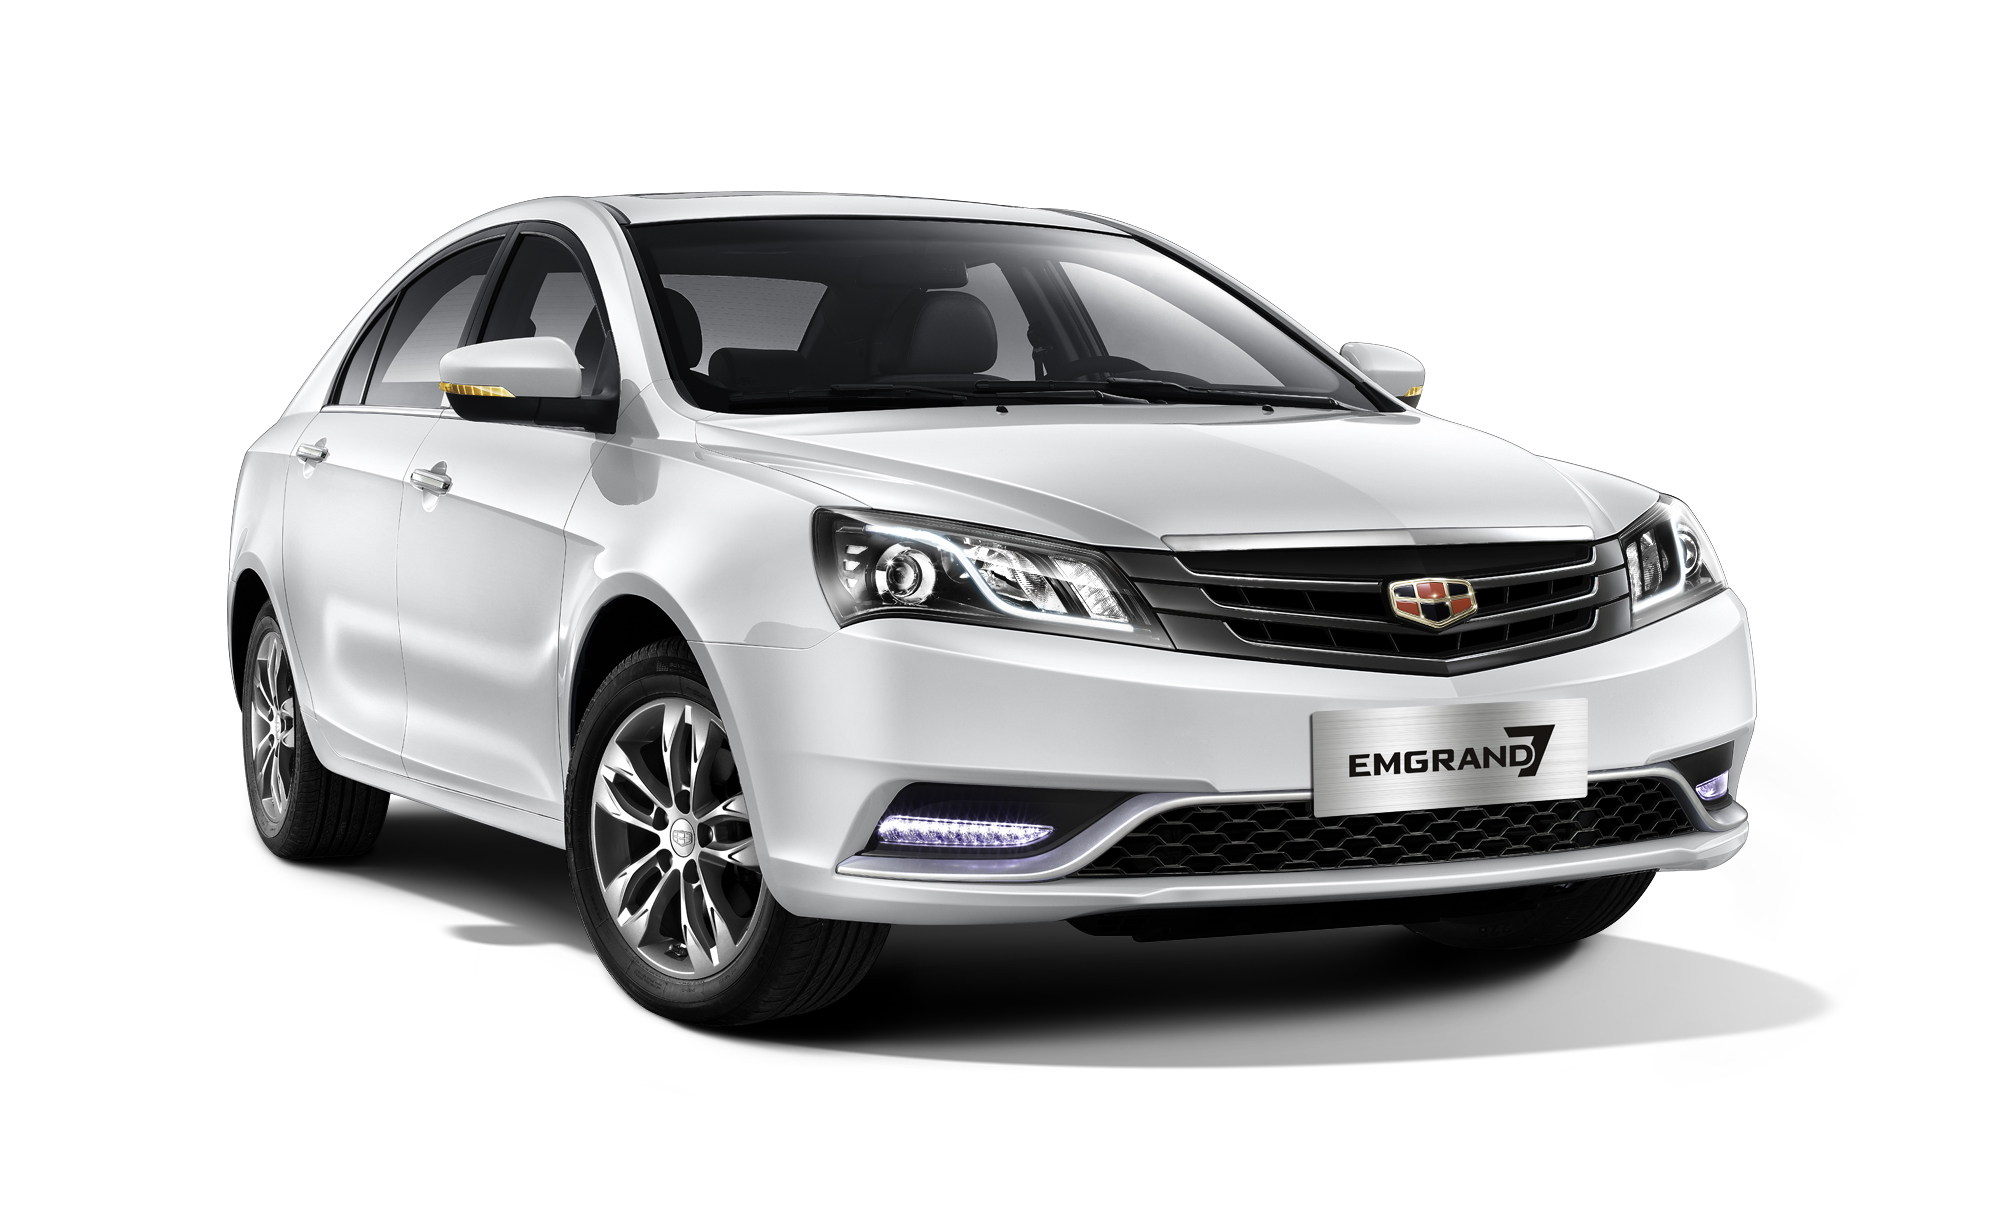 Geely Emgrand 7 (FE 3)